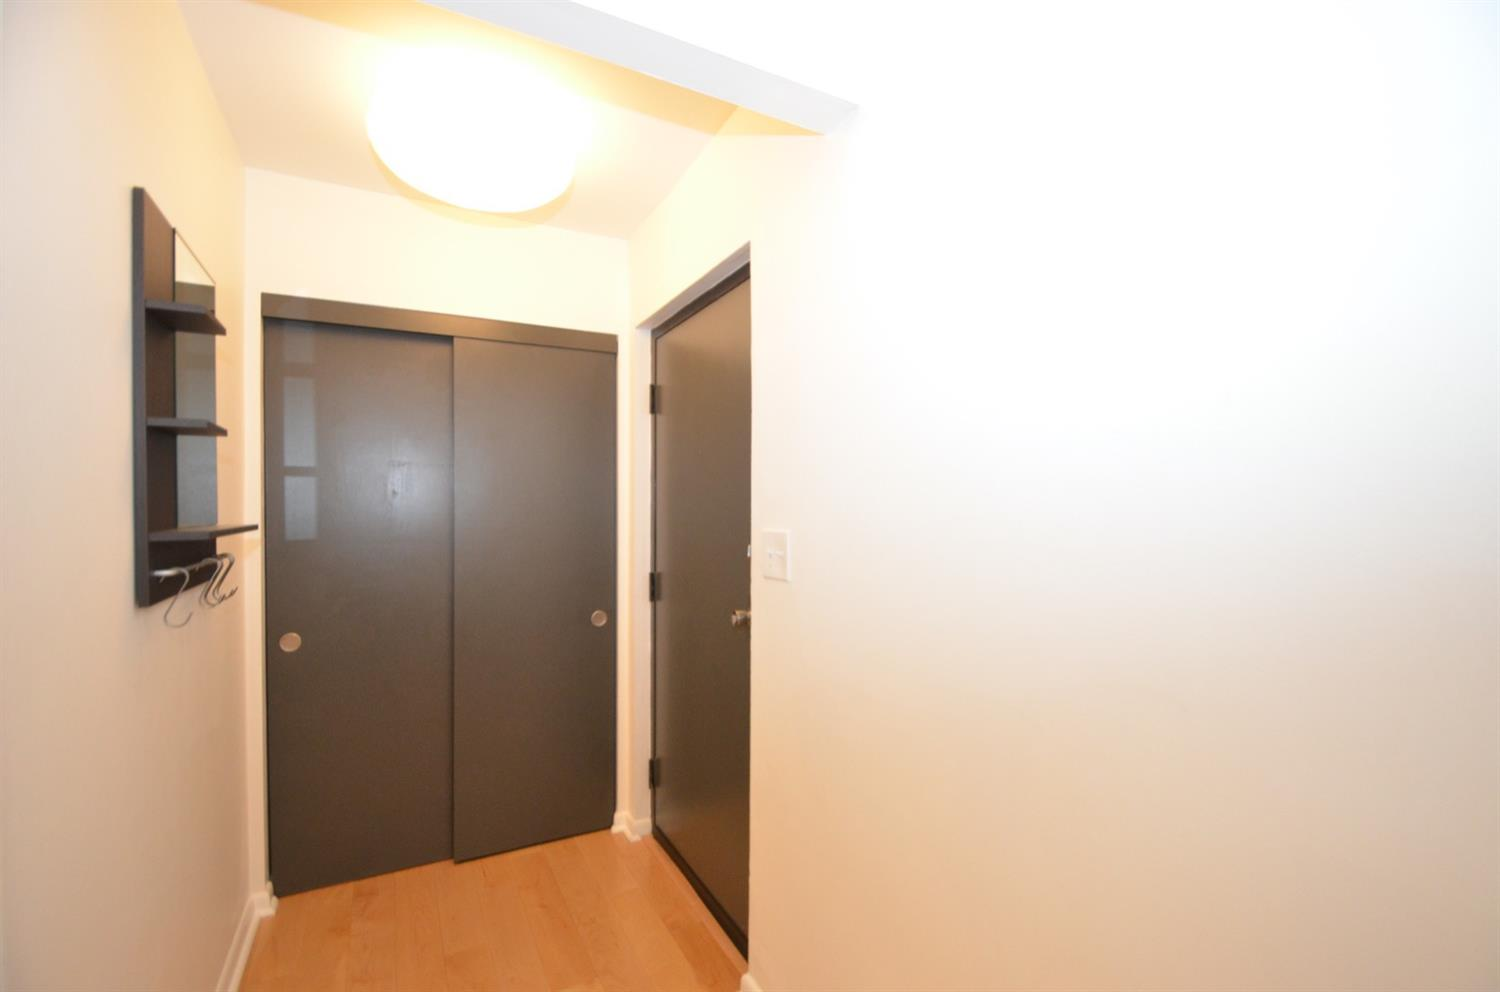 There is no shortage of storage in this small condo!  There are several closets including this entry closet with built ins.